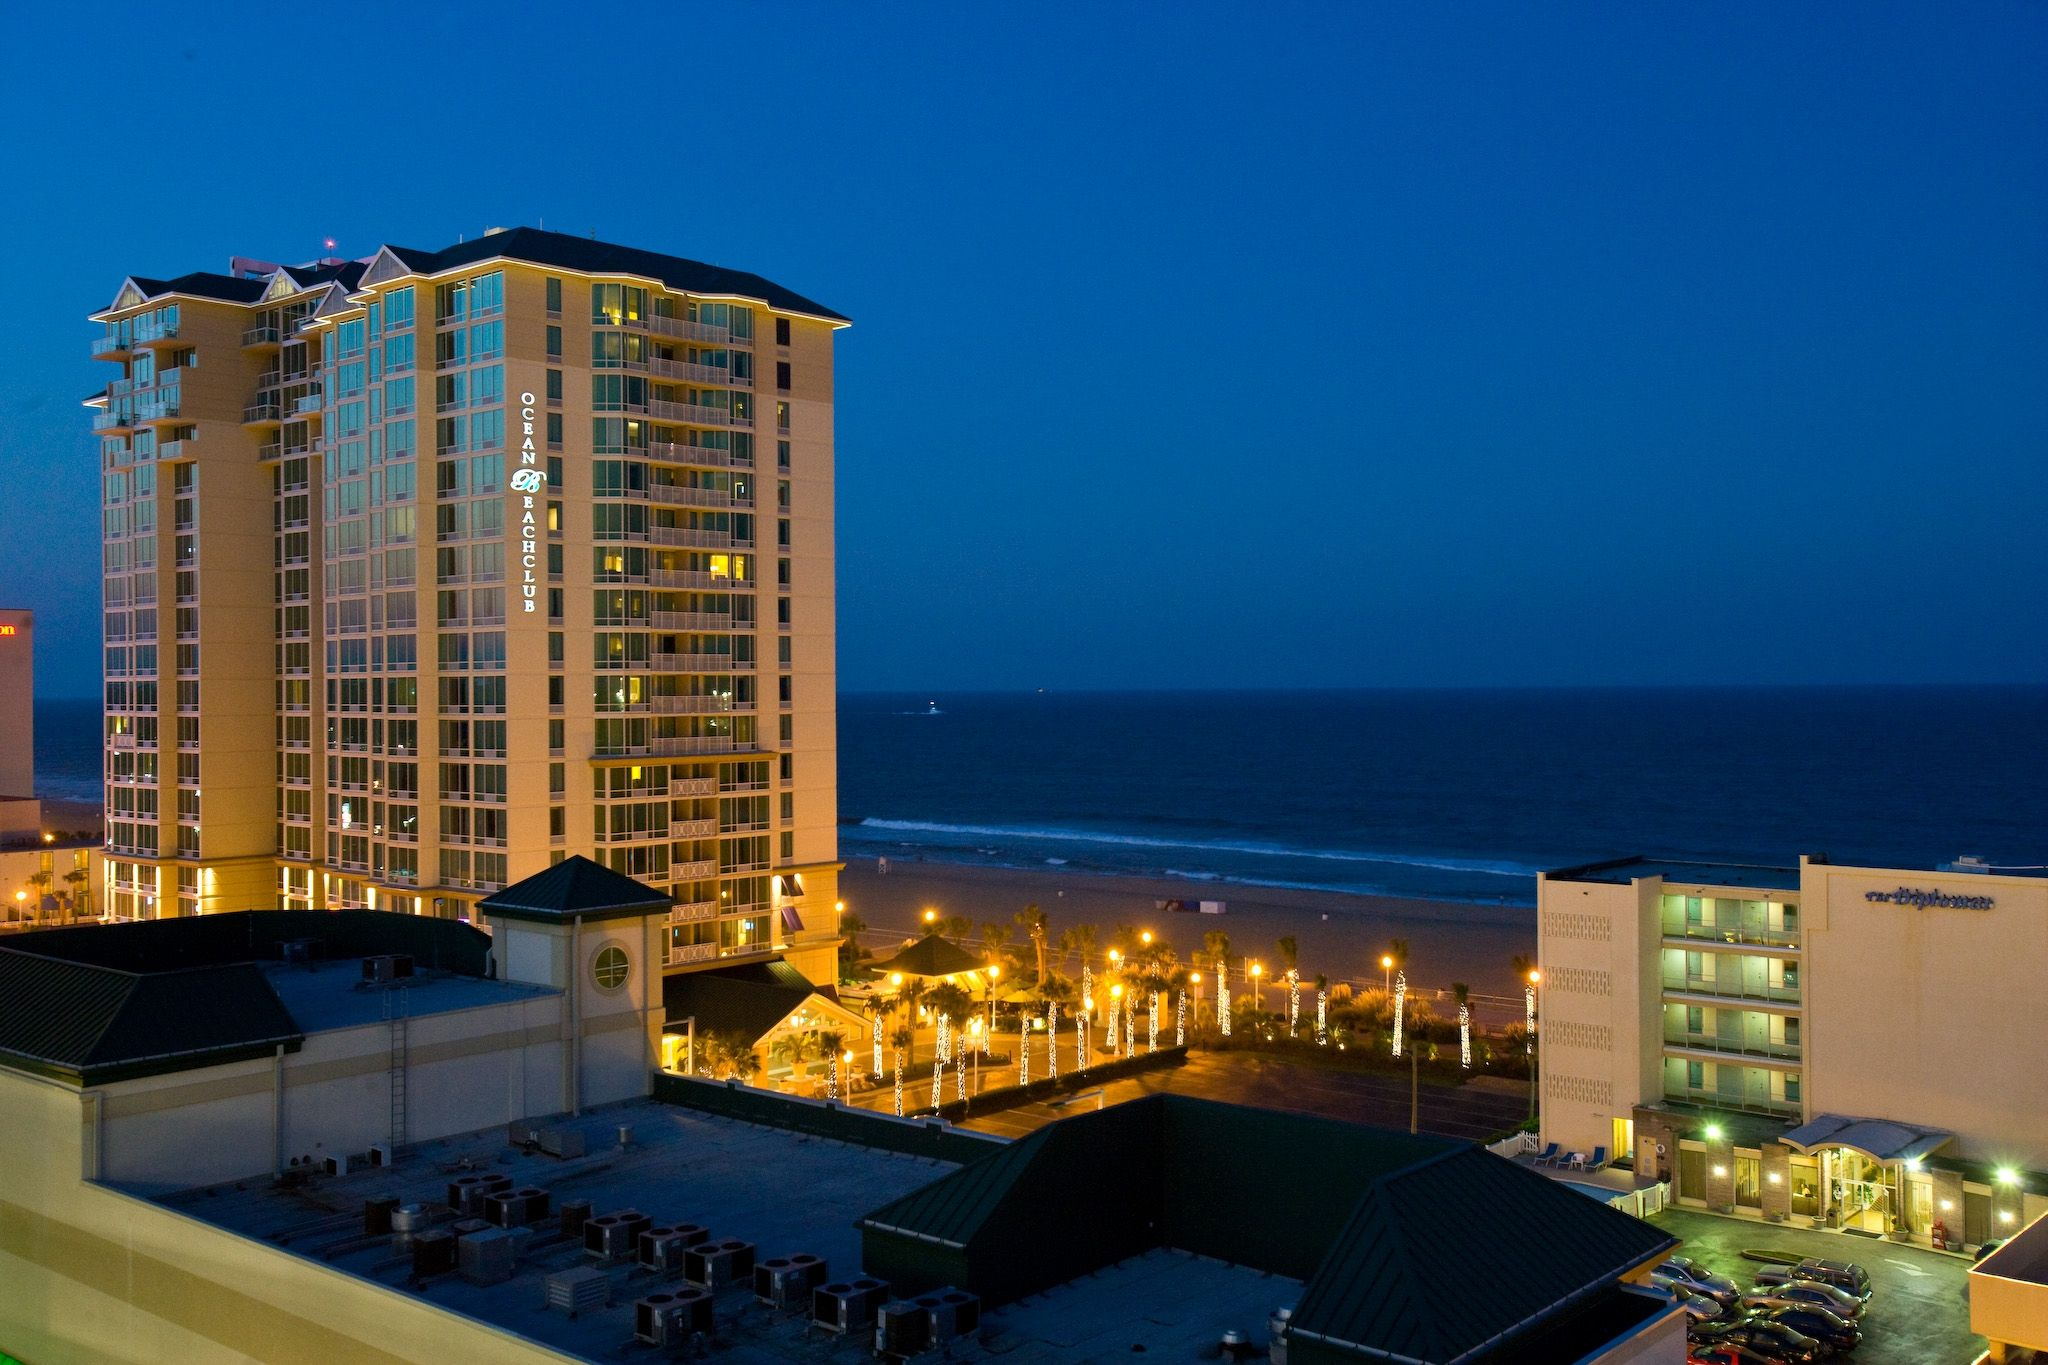 Oceanfront Hotel Va Beach Virginia Beach Oceanfront Hotels Virginia Beach Resorts Virginia Beach Hotels